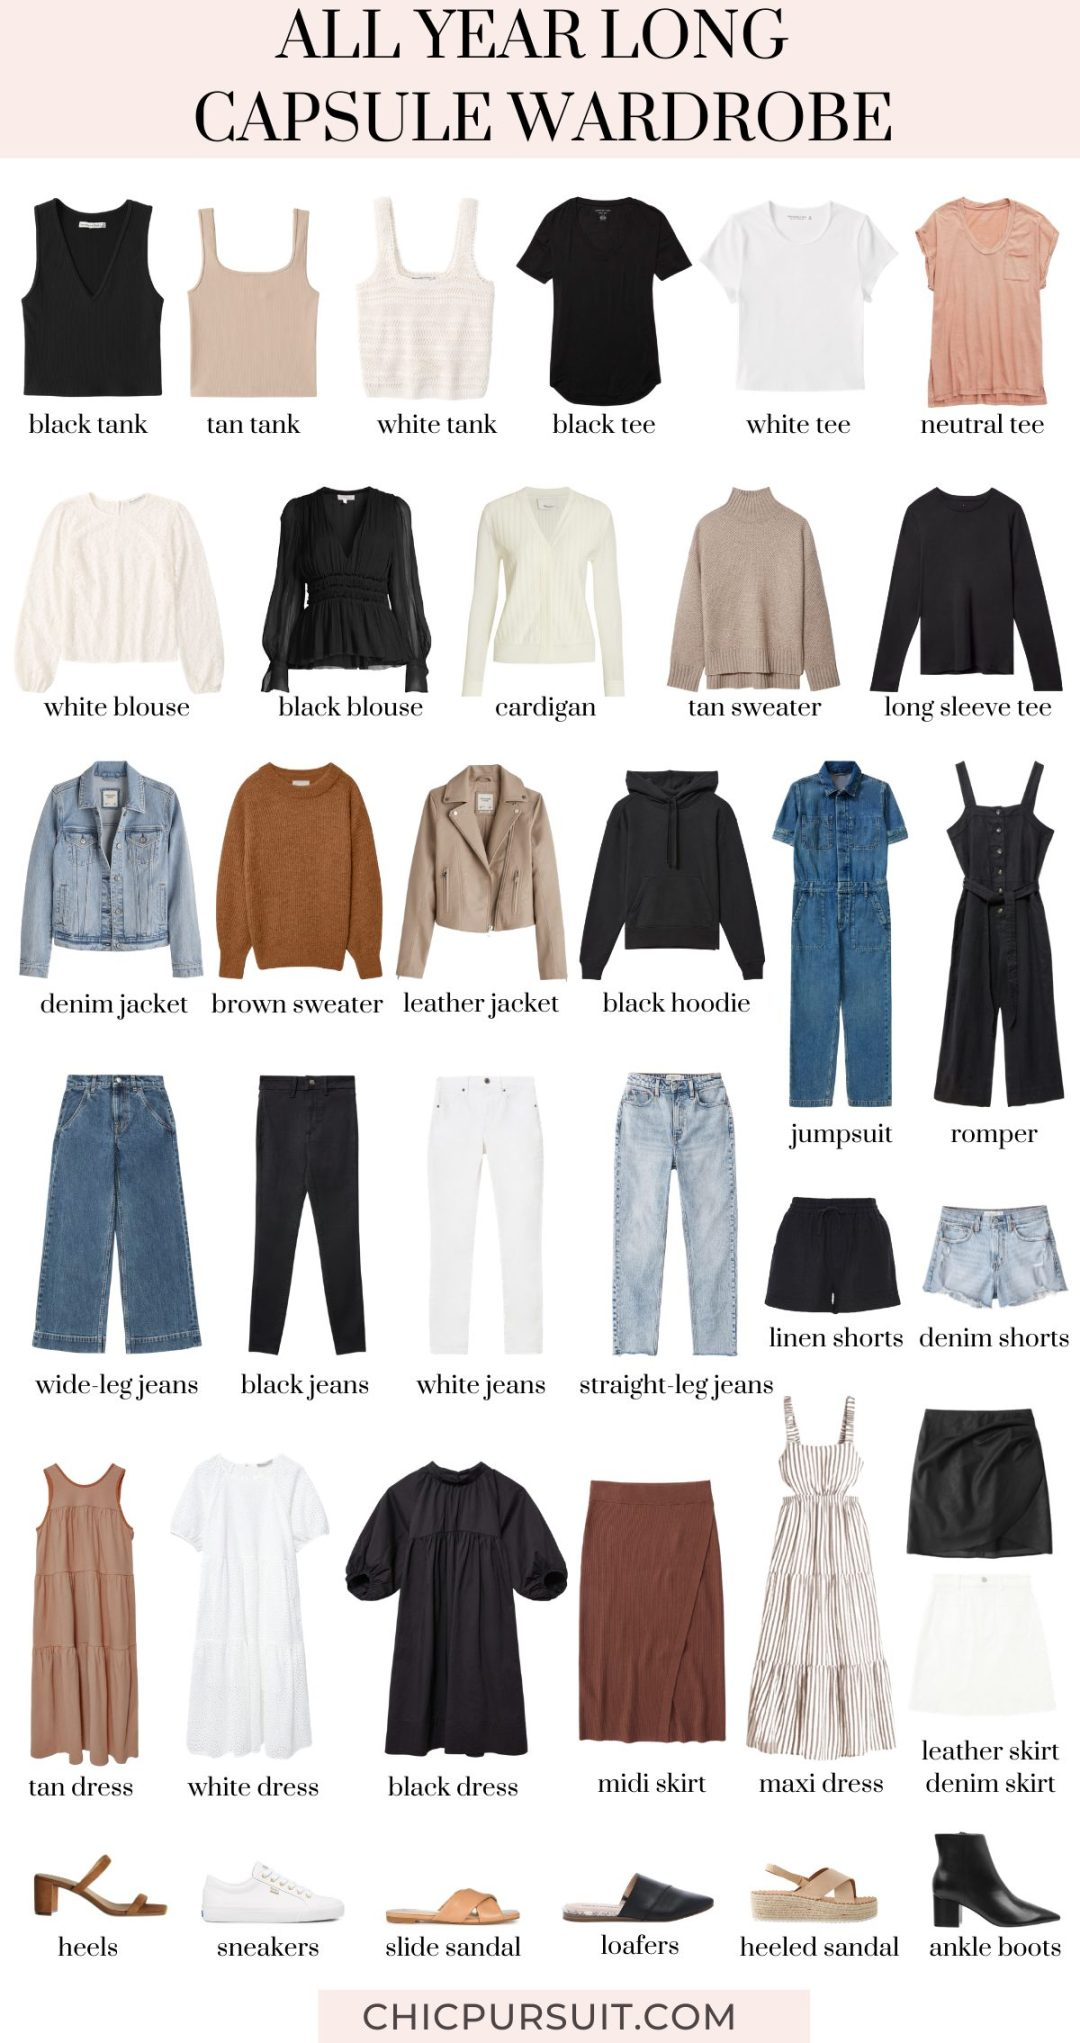 How to build a year round capsule wardrobe from scratch for the whole year